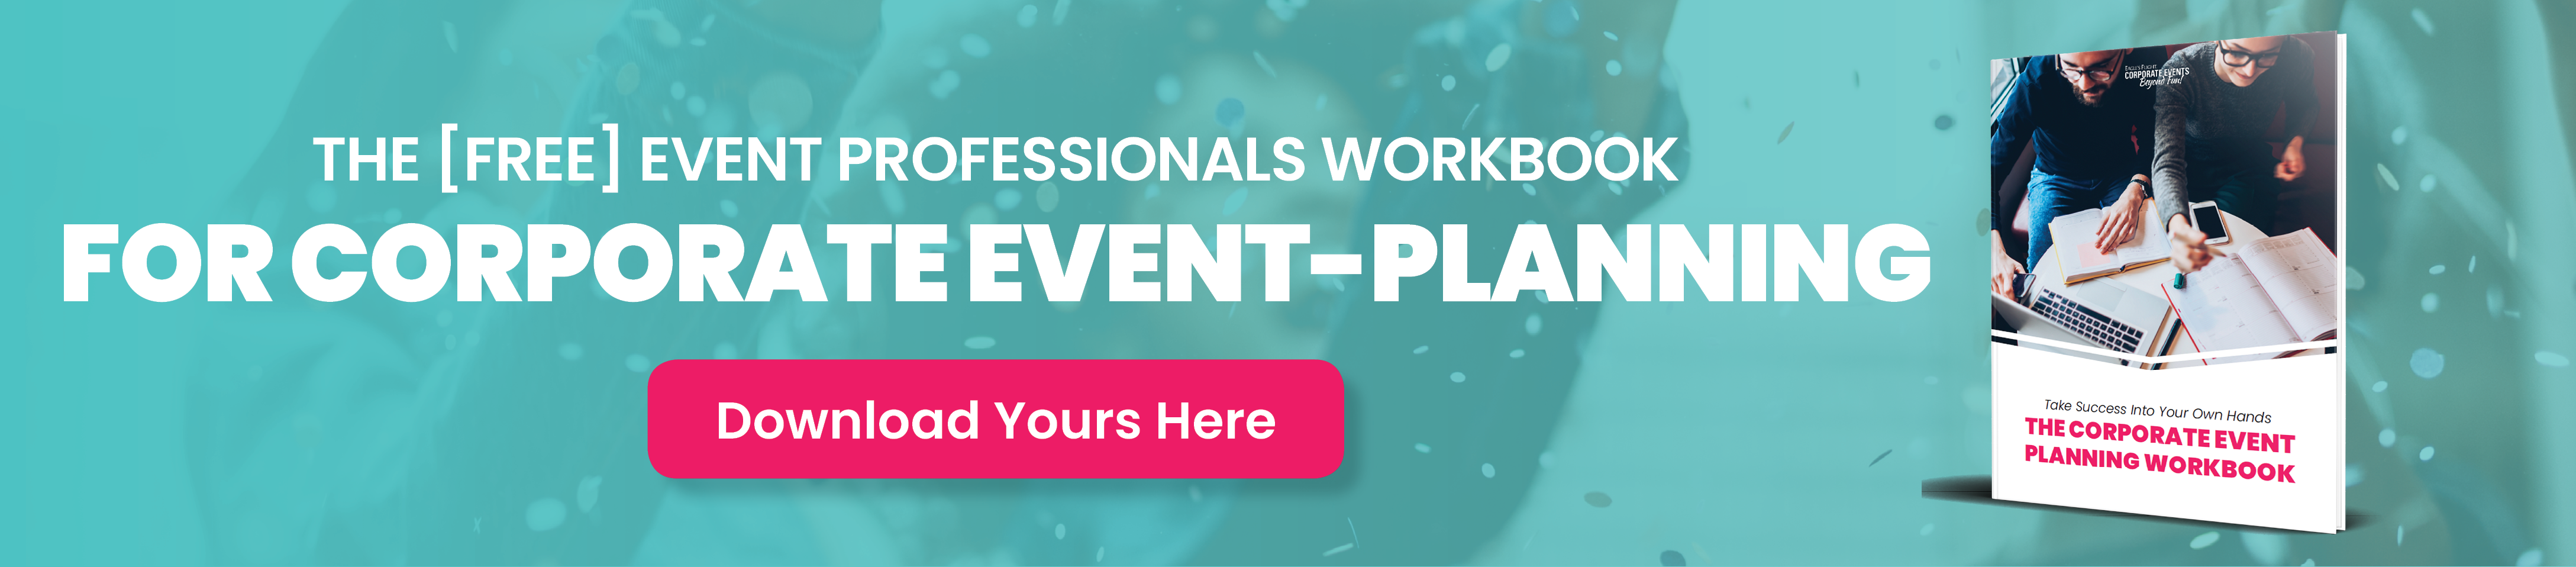 The Corporate Event Planning Workbook